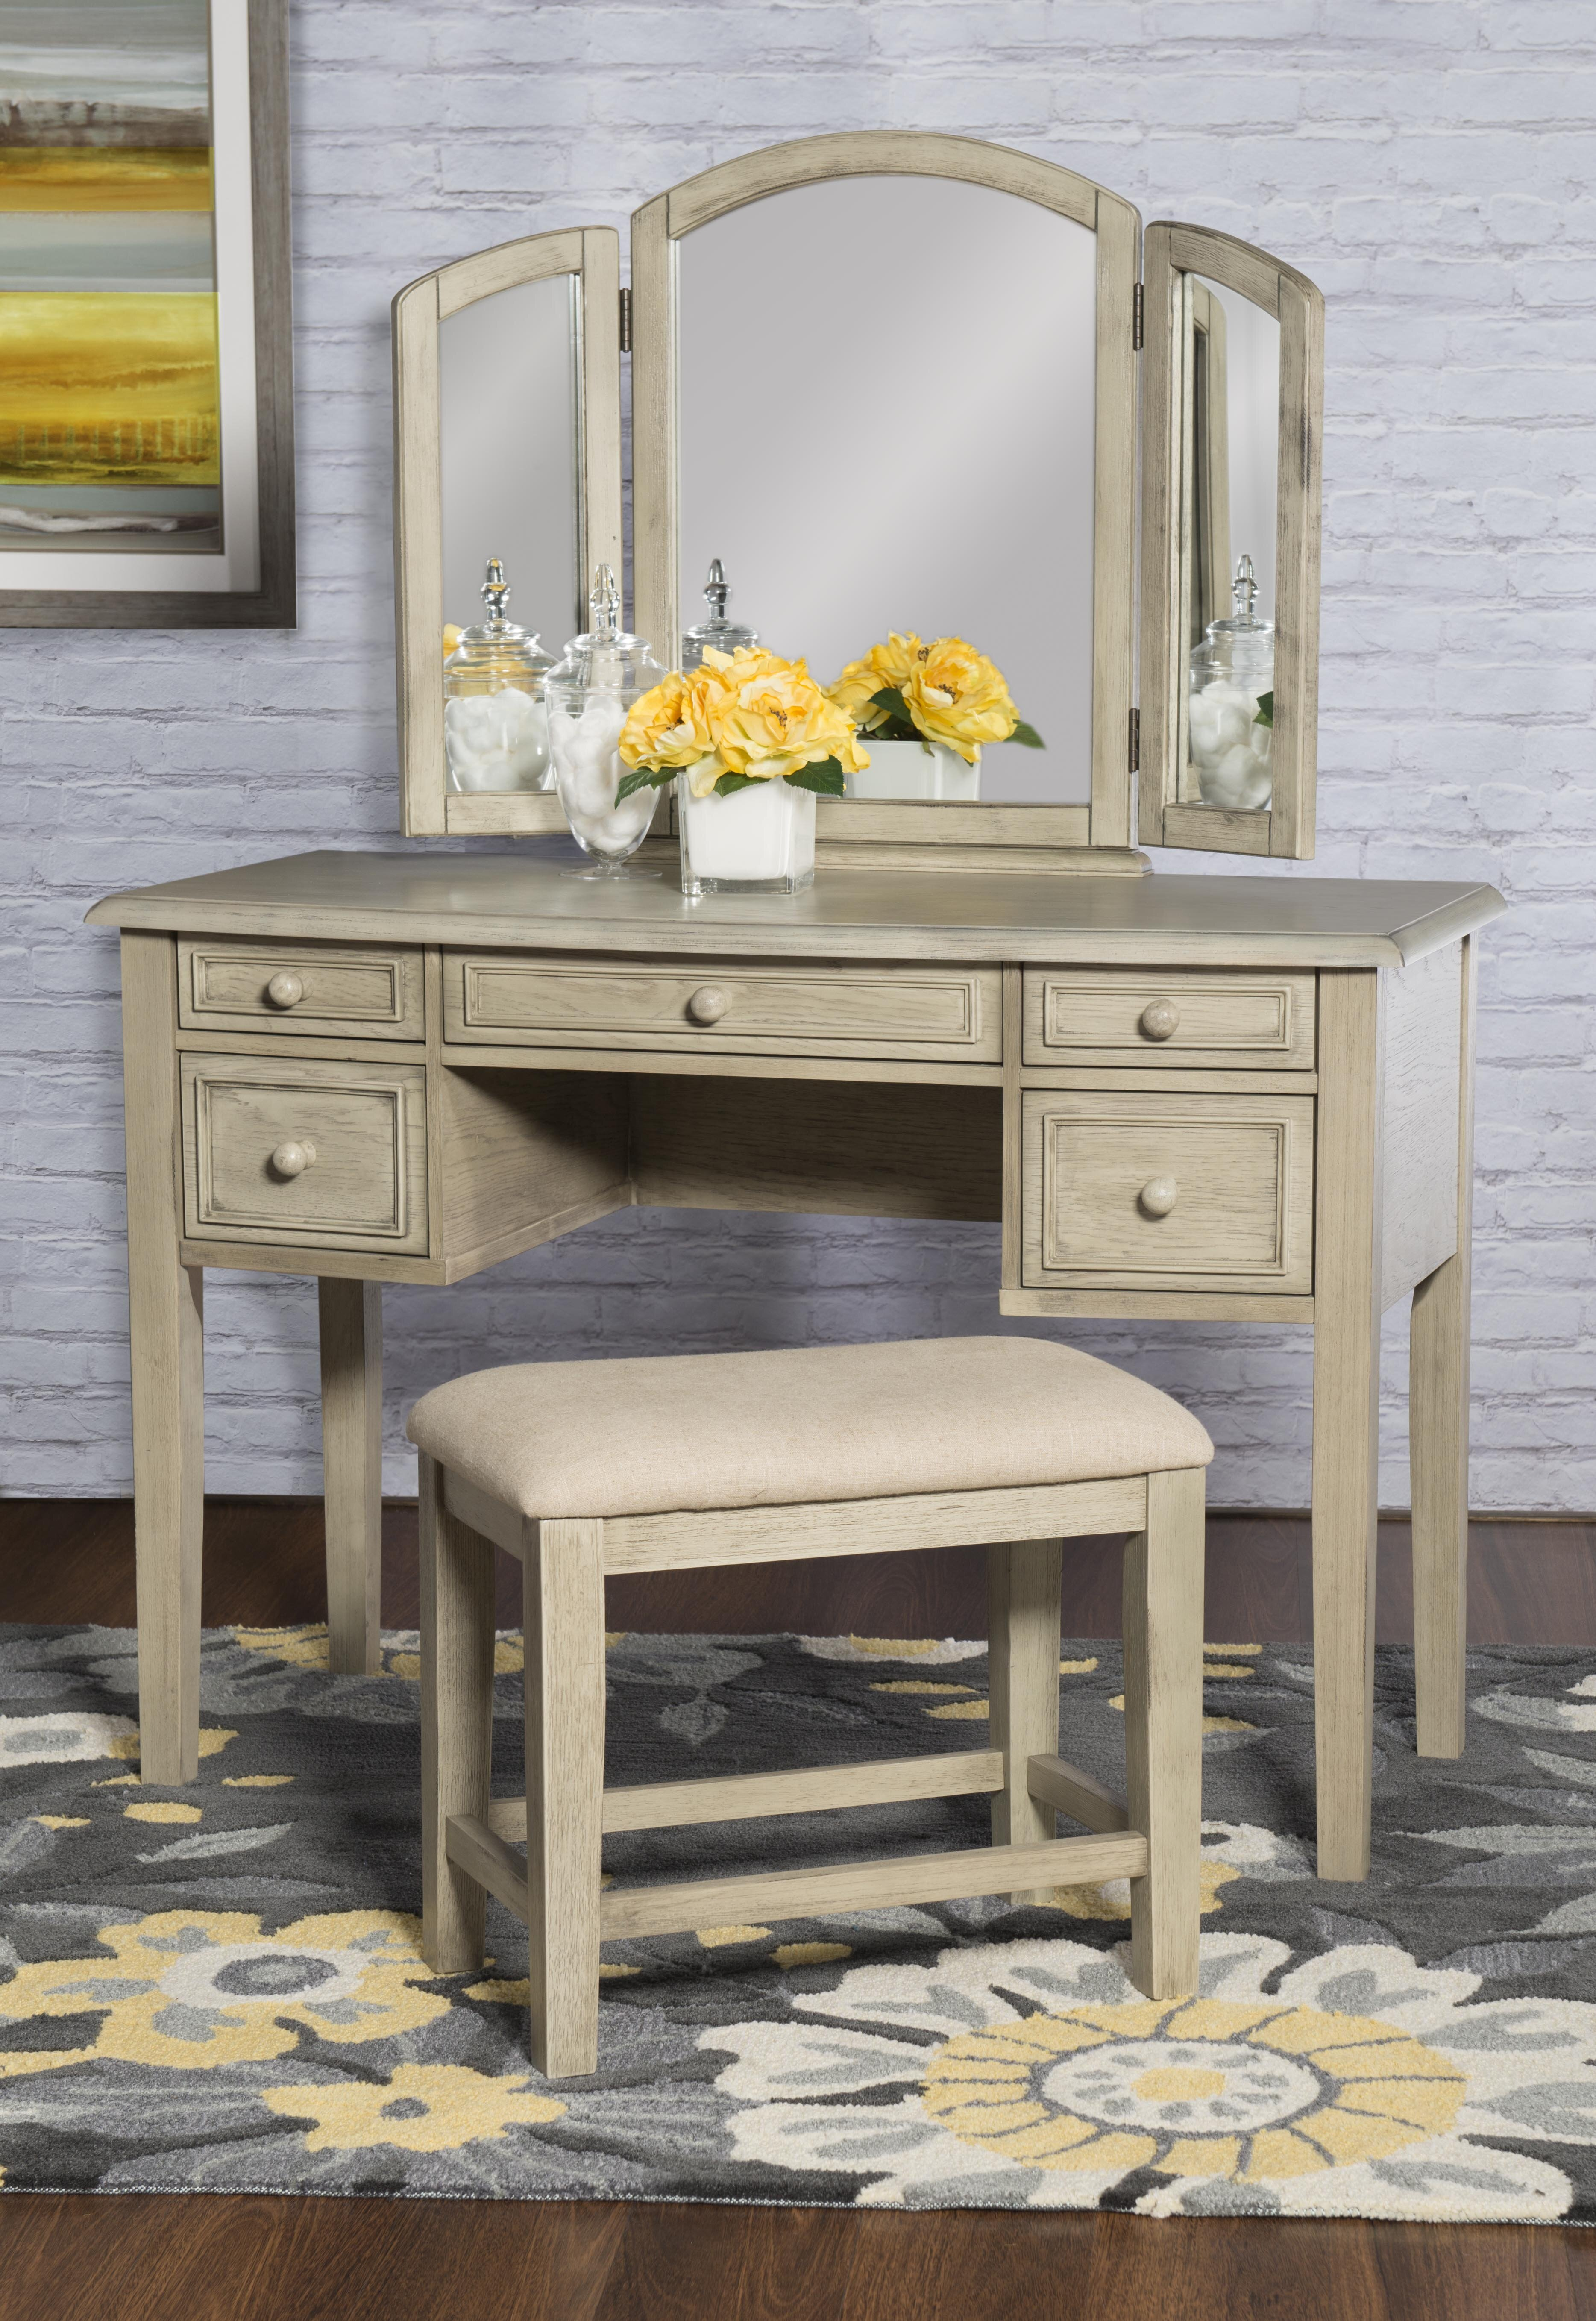 Farmhouse Rustic Makeup Vanities Birch Lane